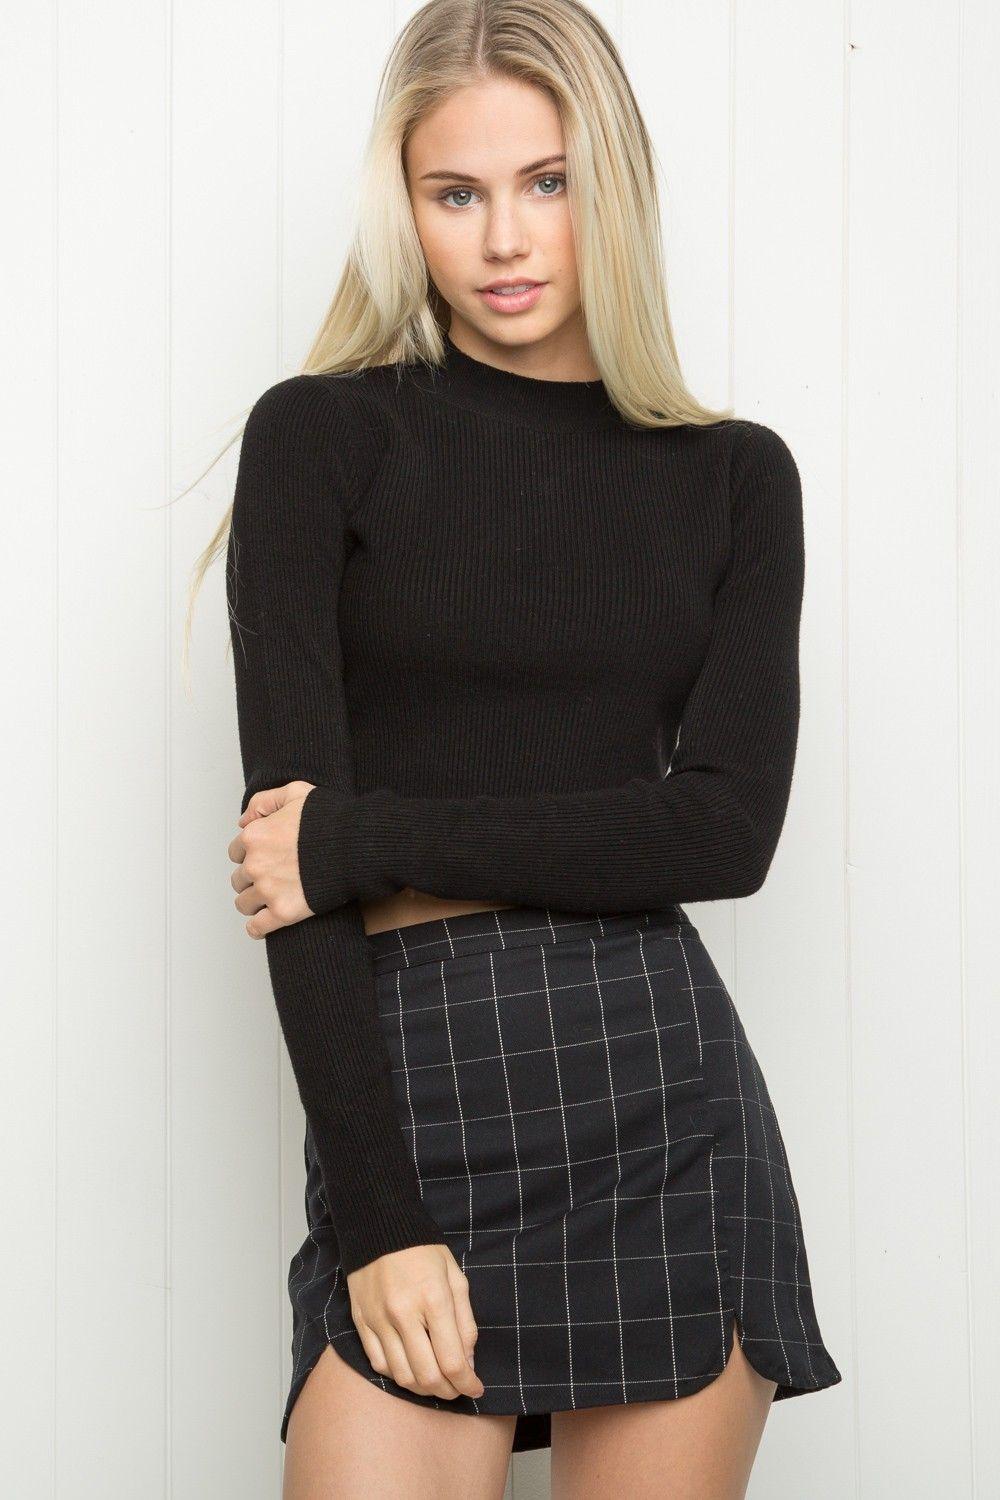 Brandy Melville Raquel Skirt Bottoms Clothing ™� Closet Pinterest Brandy Melville